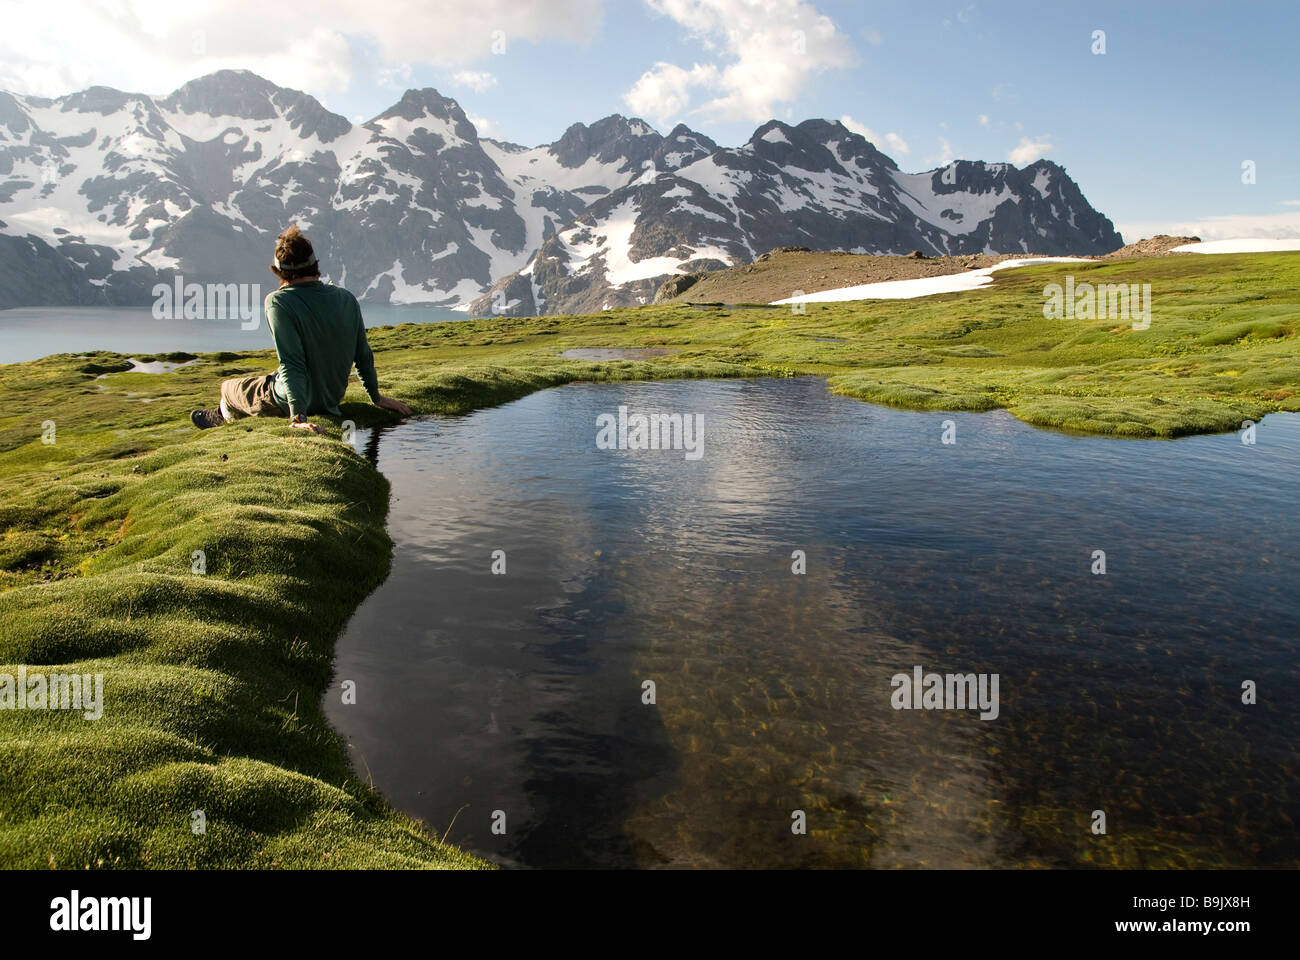 A young man sits next to a small pool enjoying a view of distant snow covered mountains. - Stock Image